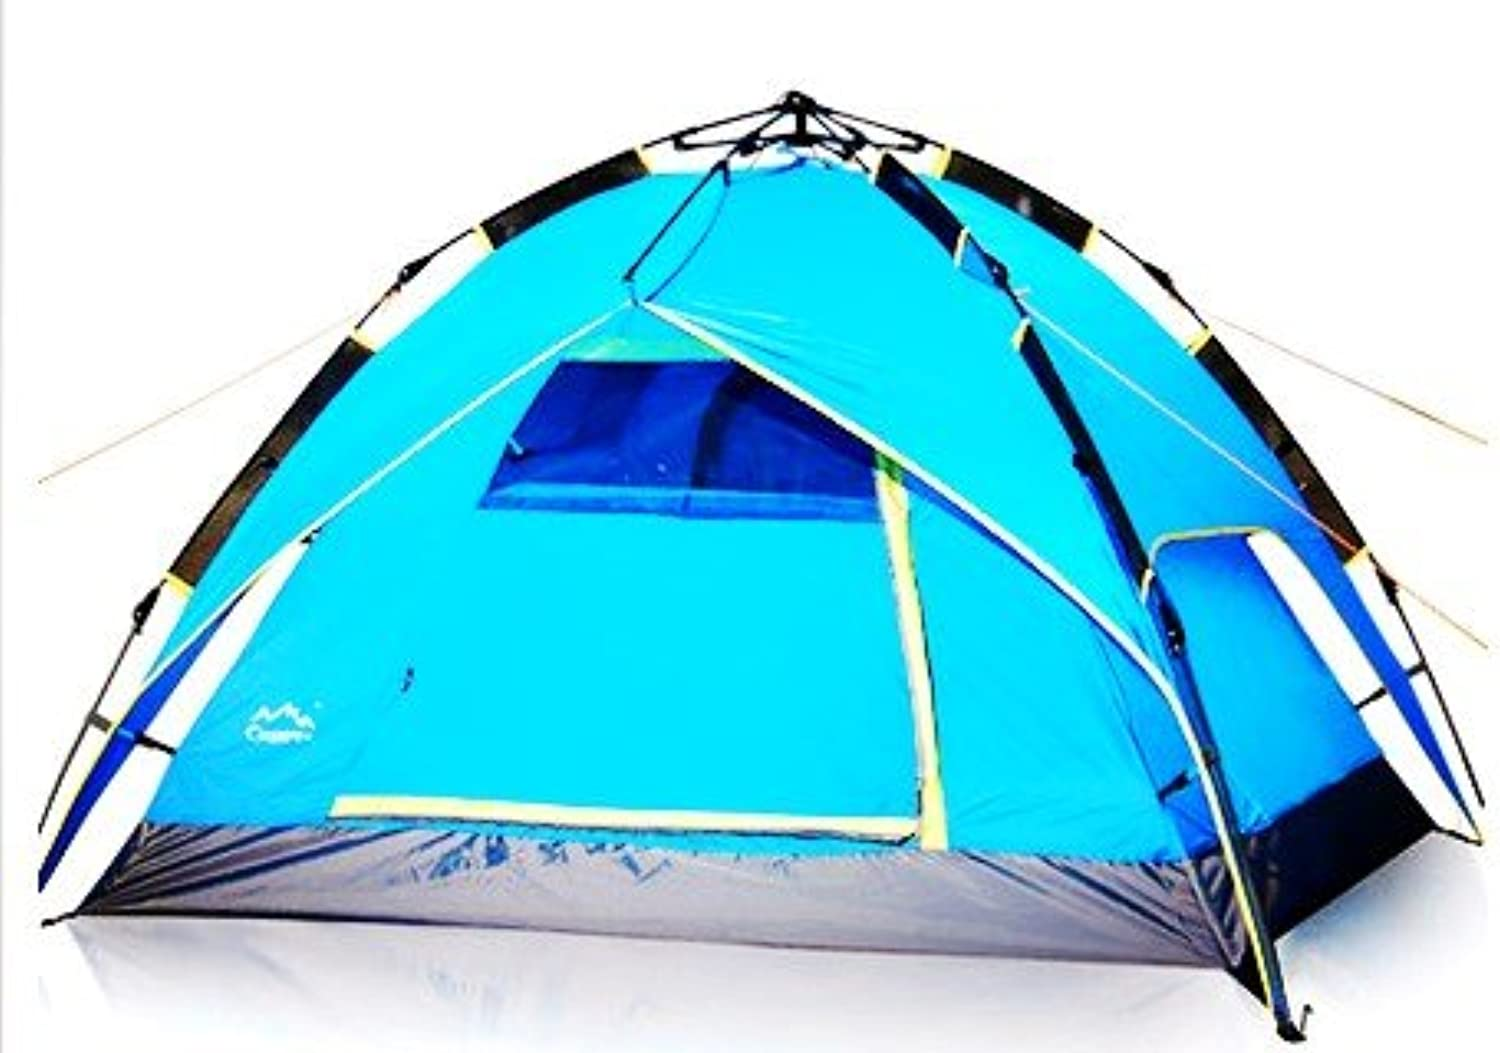 Youxd Bed Tent,1-2 Person Pop-up Small Tent Extended Easy Ventilation Moisture-Proof Rainproof Christmas Party Beach Outdoor Equipment Metal (color   bluee)